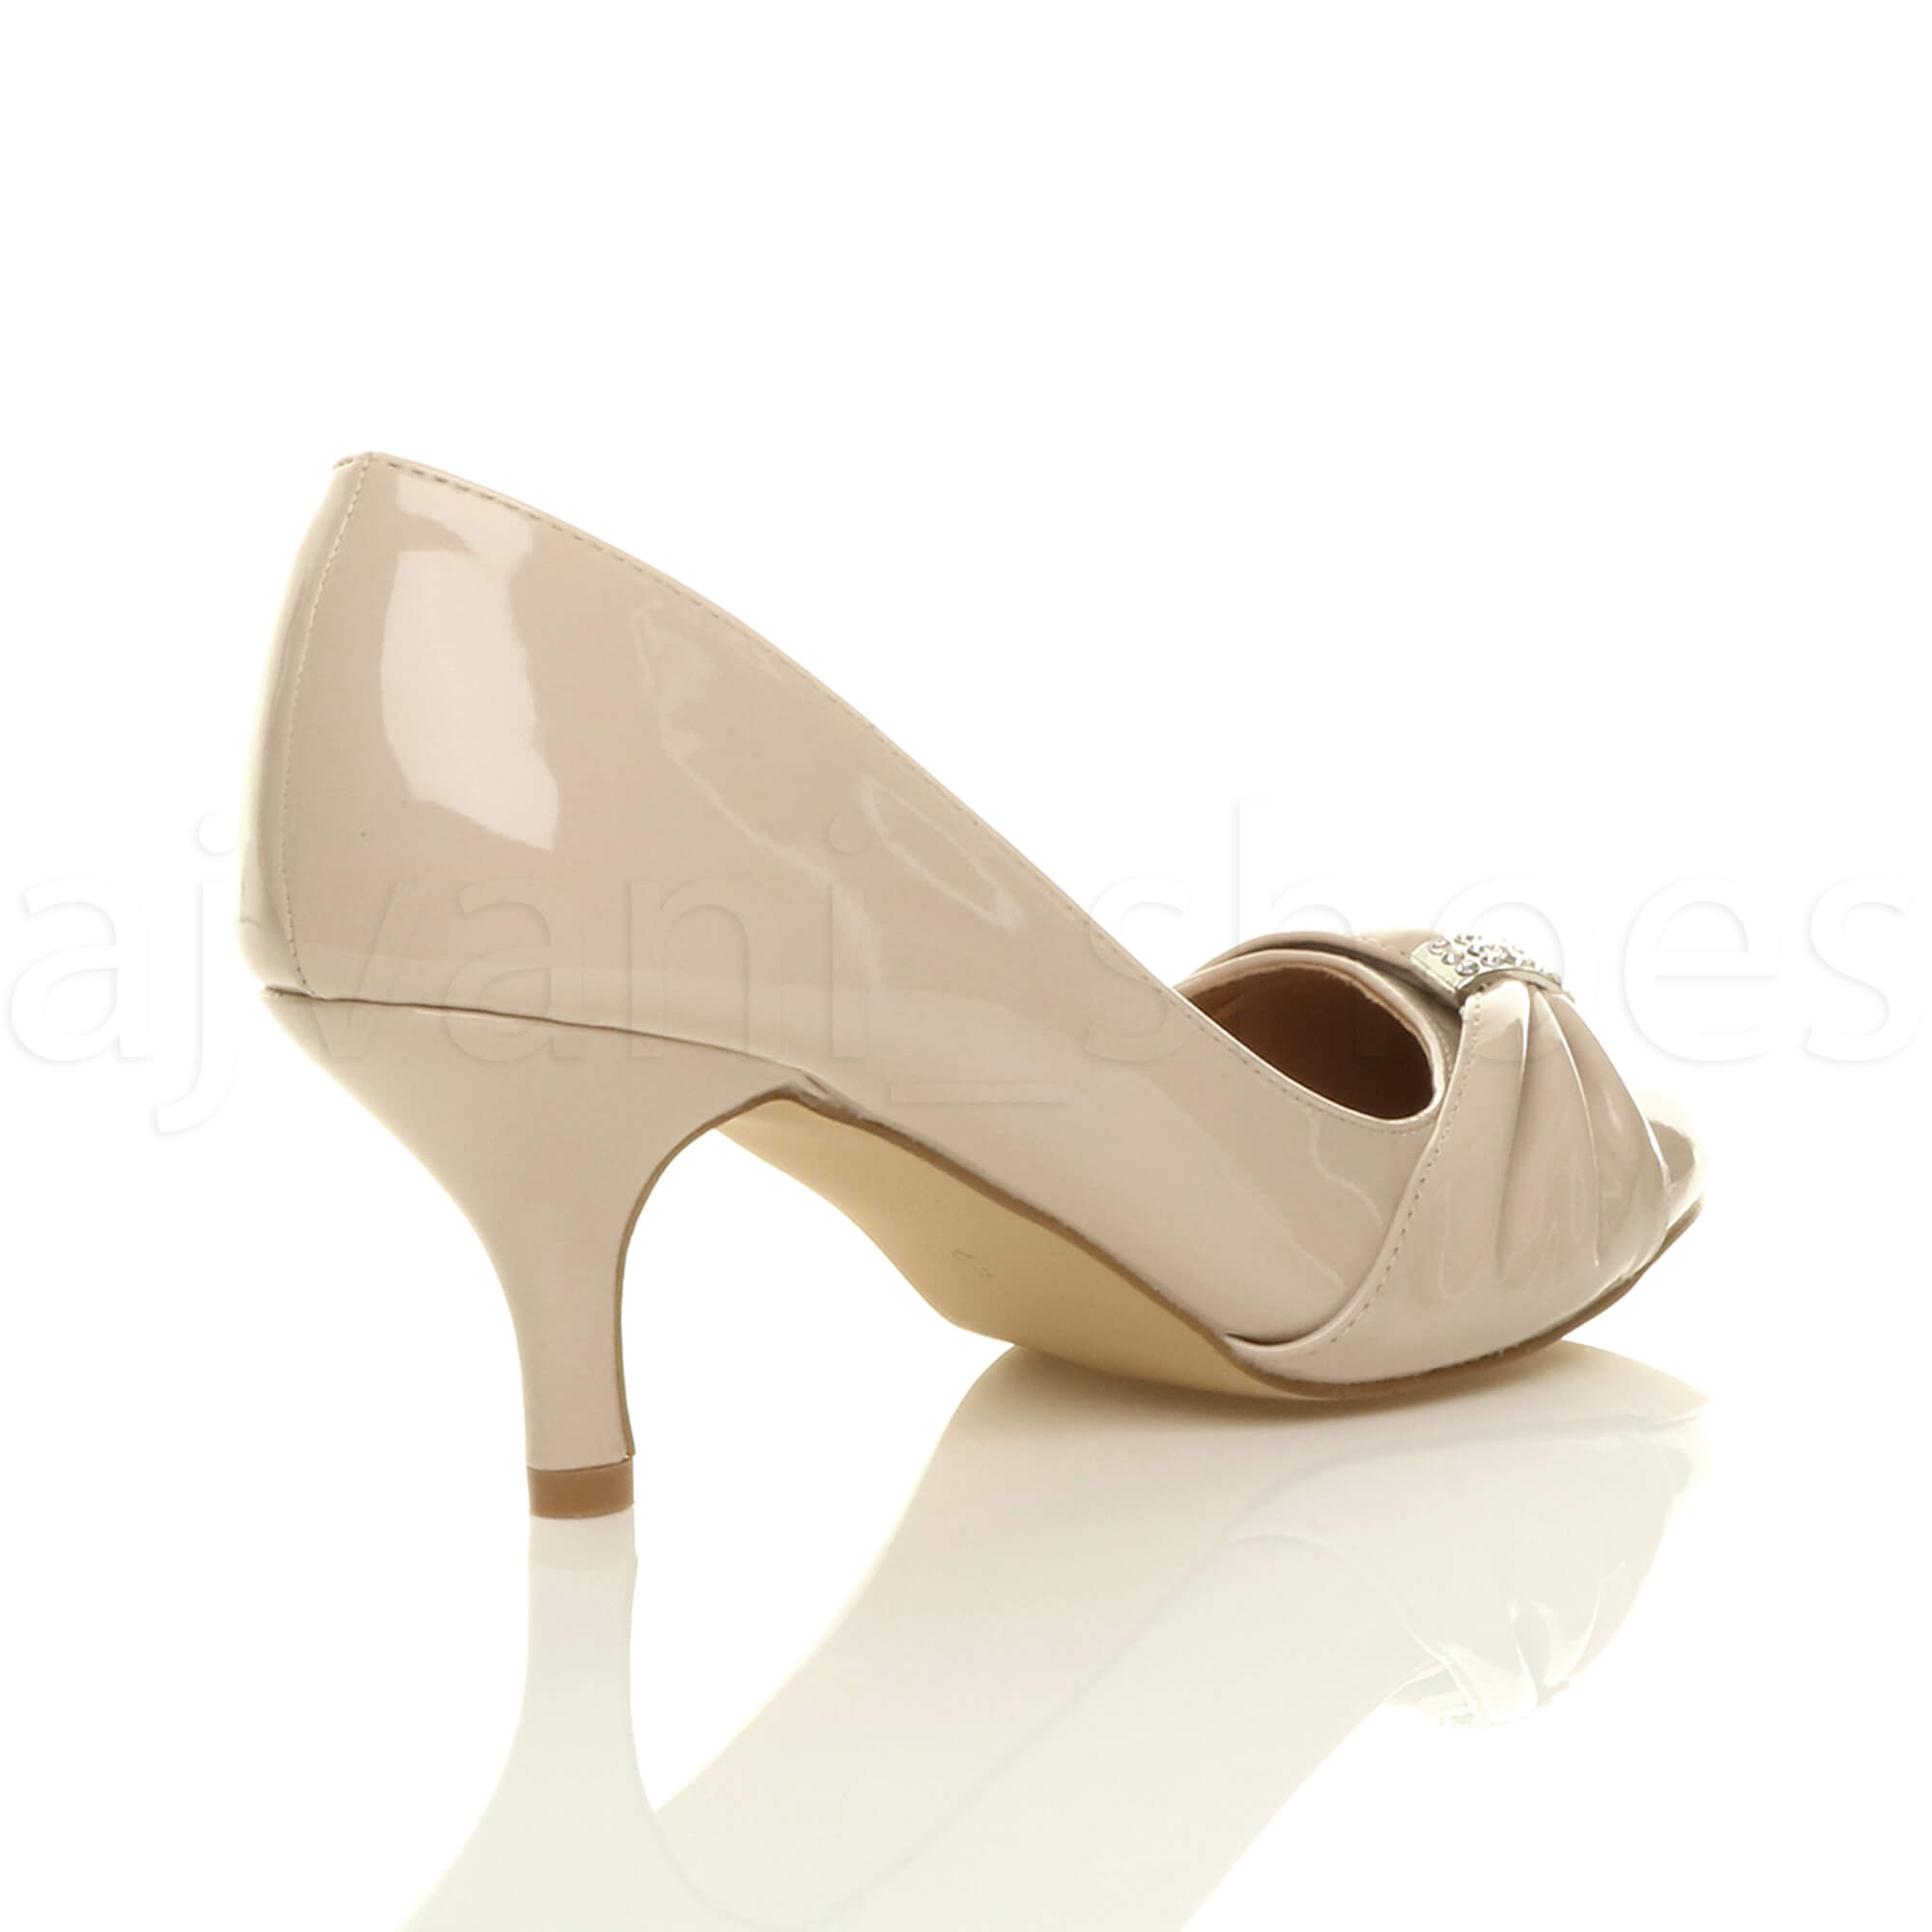 WOMENS-LADIES-MID-HEEL-RUCHED-DIAMANTE-WEDDING-PROM-EVENING-COURT-SHOES-SIZE thumbnail 69